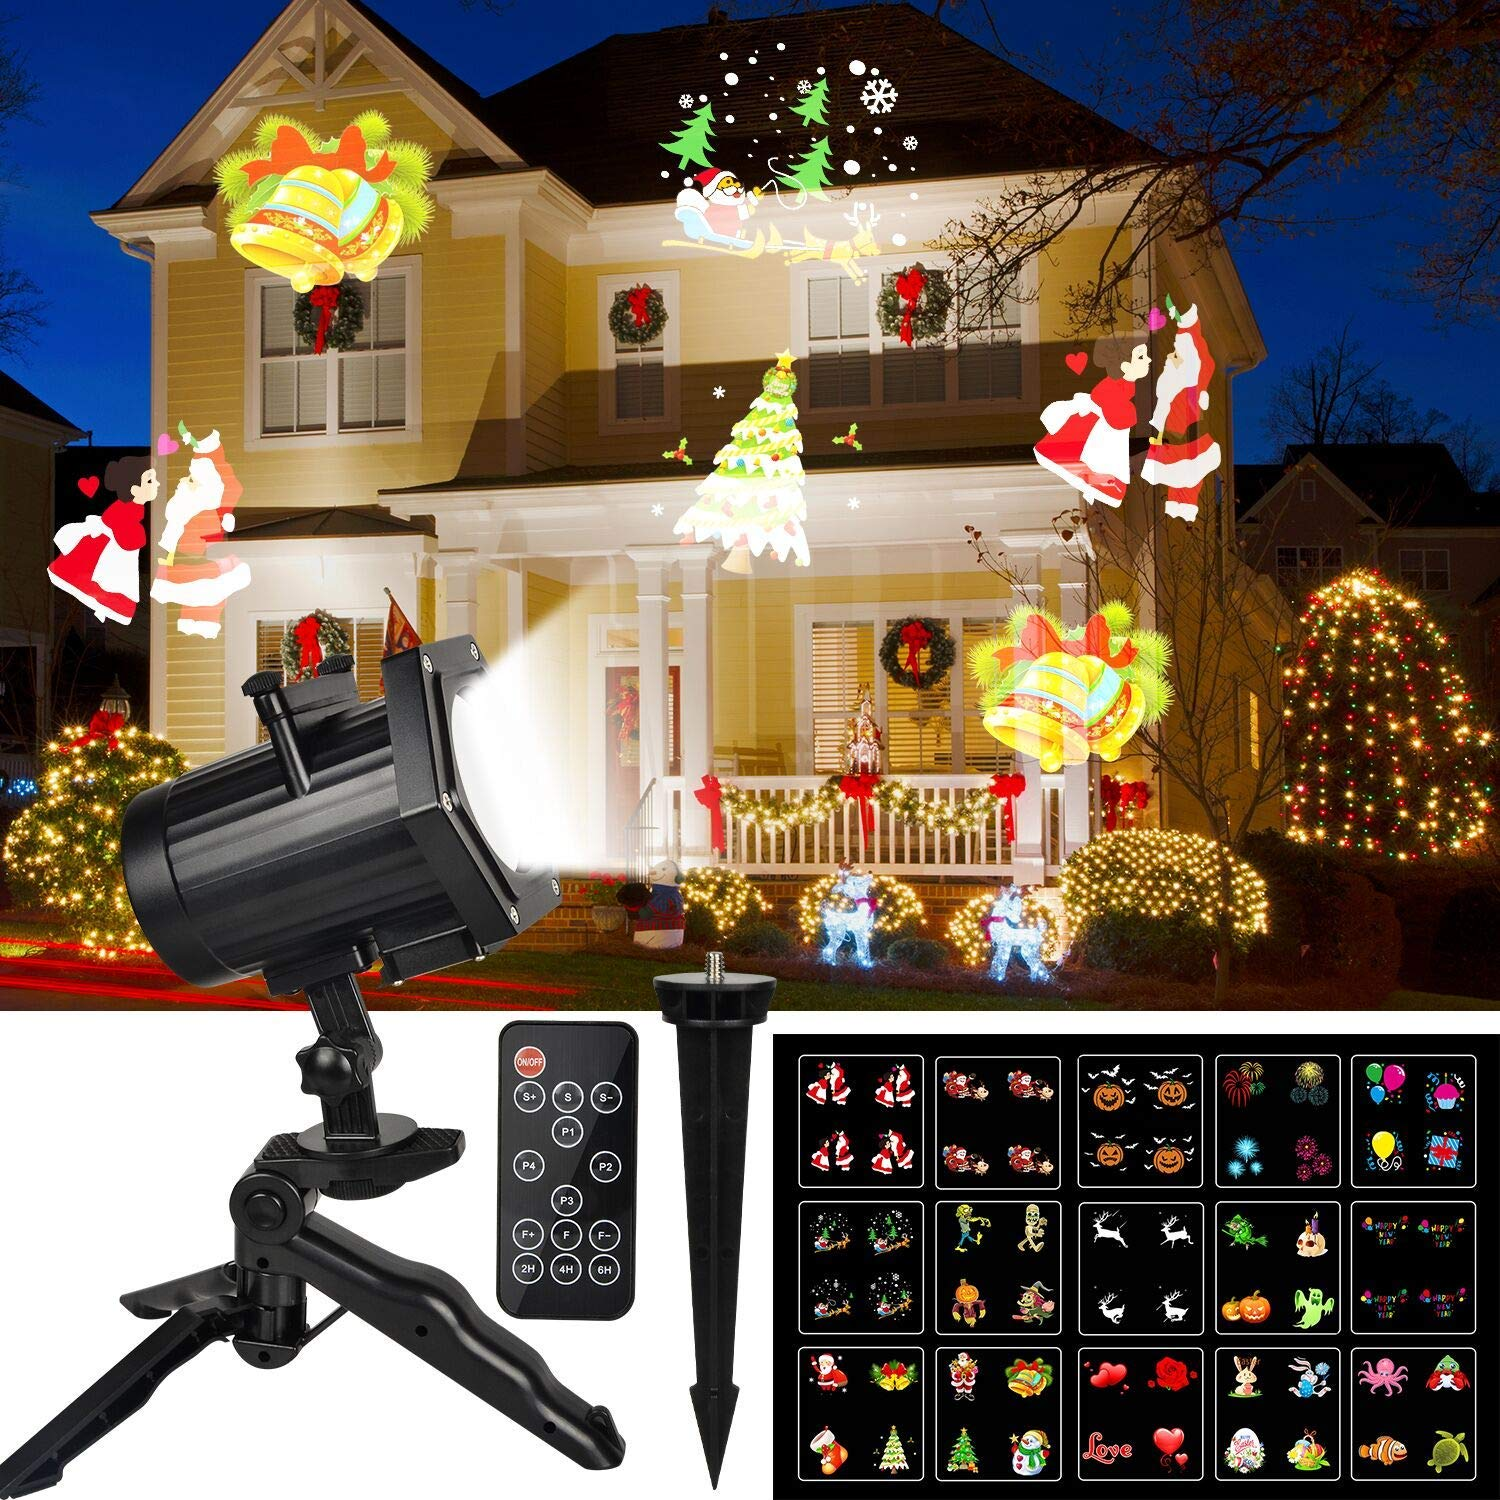 kmashi christmas light dynamic outdoor christmas projector light 15 s kmashi christmas light dynamic outdoor christmas projector light 15 switchable pattern rf remote control and timer waterproof holiday decoration